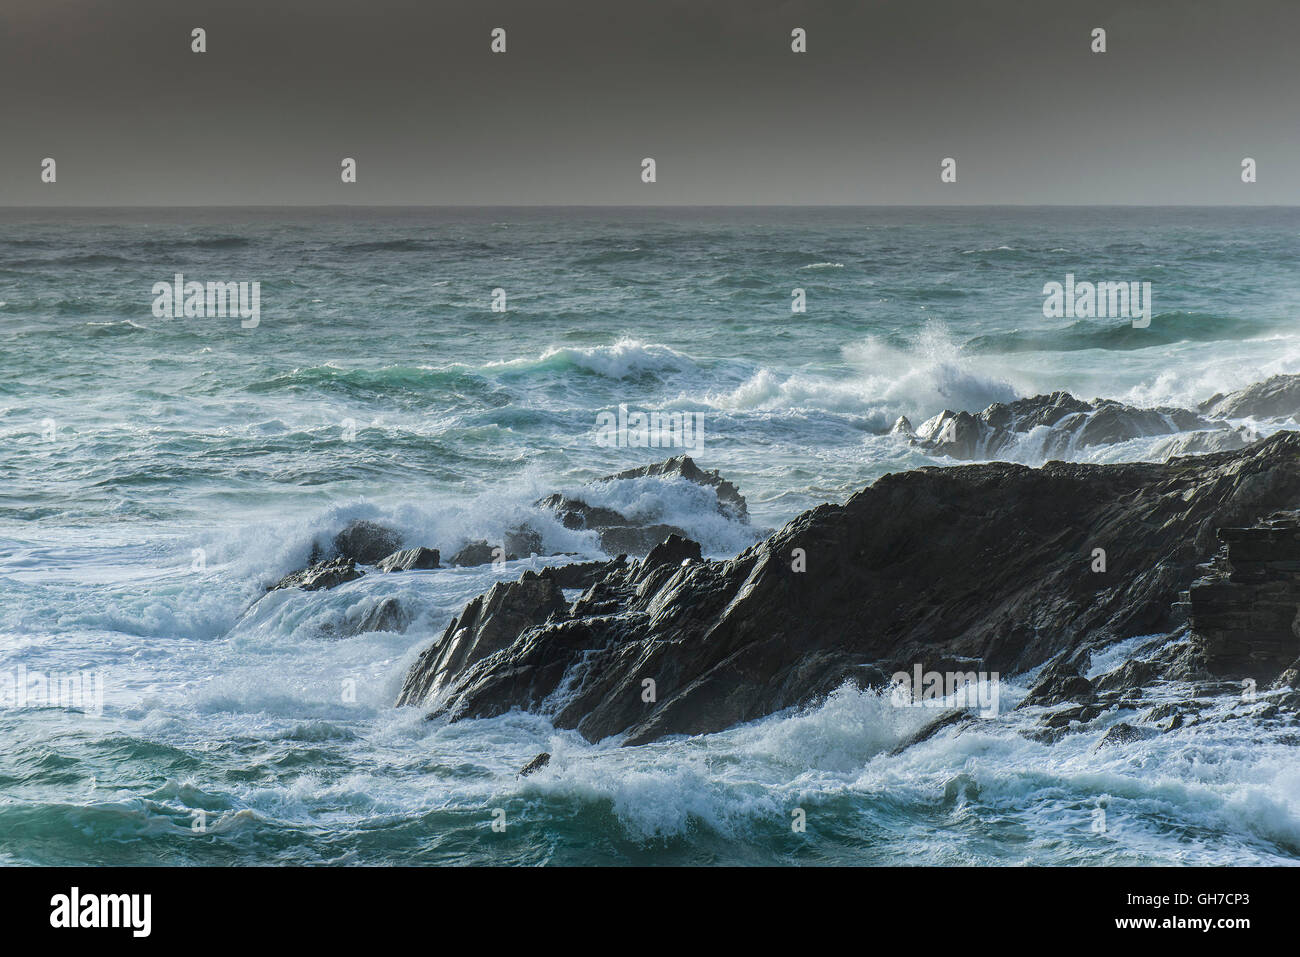 Rough seas off Towan Headland in Newquay, Cornwall. - Stock Image